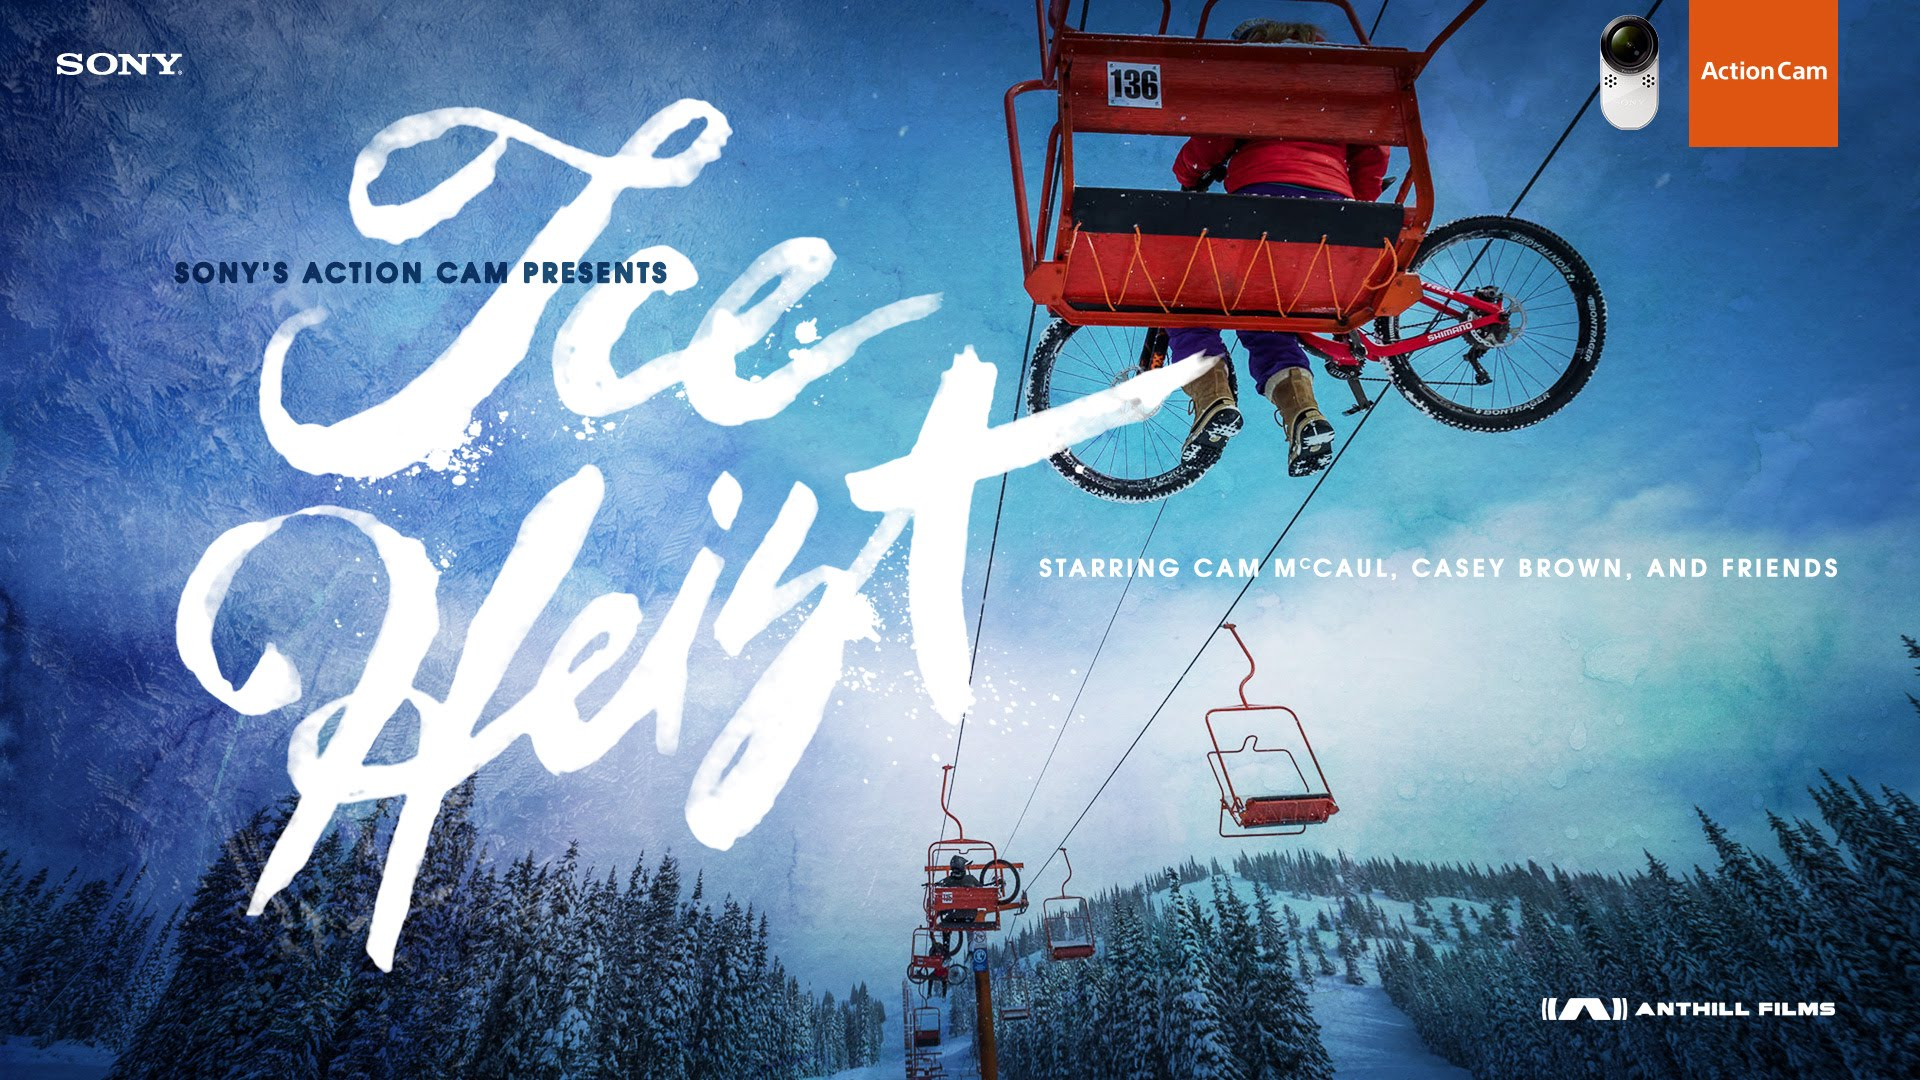 Casey Brown & Cam McCaul in Ice Heist | Action Cam | Sony